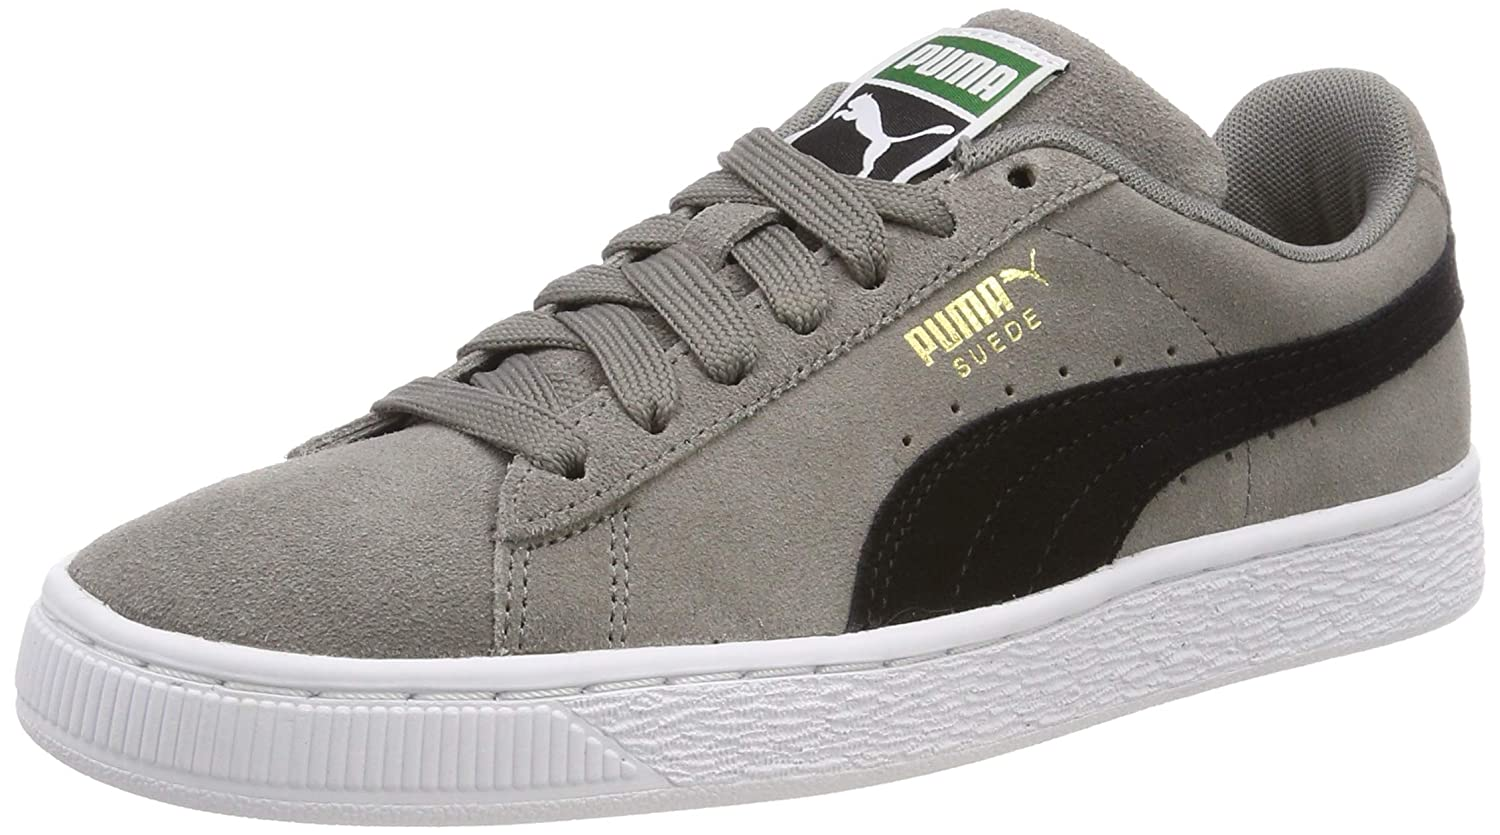 best service acf30 35470 Amazon.com   Puma Unisex Adults  Suede Classic Low-Top Sneakers, Grey (Charcoal  Gray-Puma Black 54), 8.5 UK   Fashion Sneakers